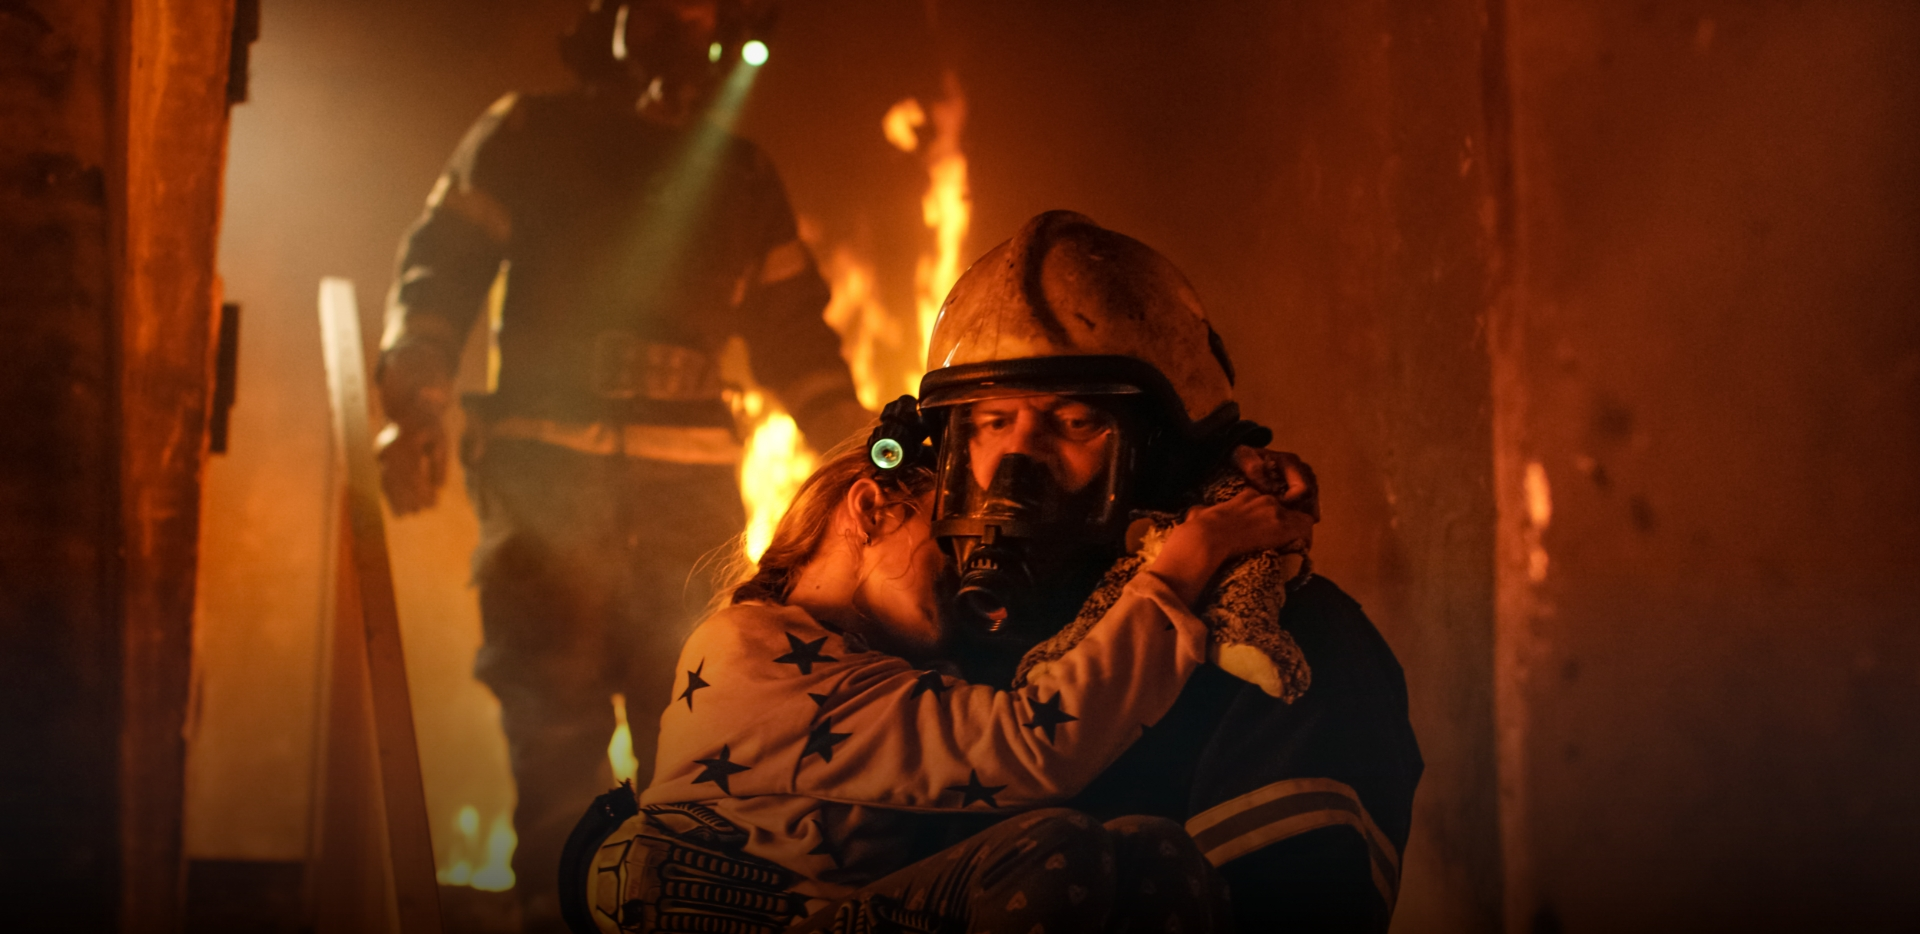 a firefighter carries a young girl wearing pajamas and holding a stuffed animal out of a burning house at night